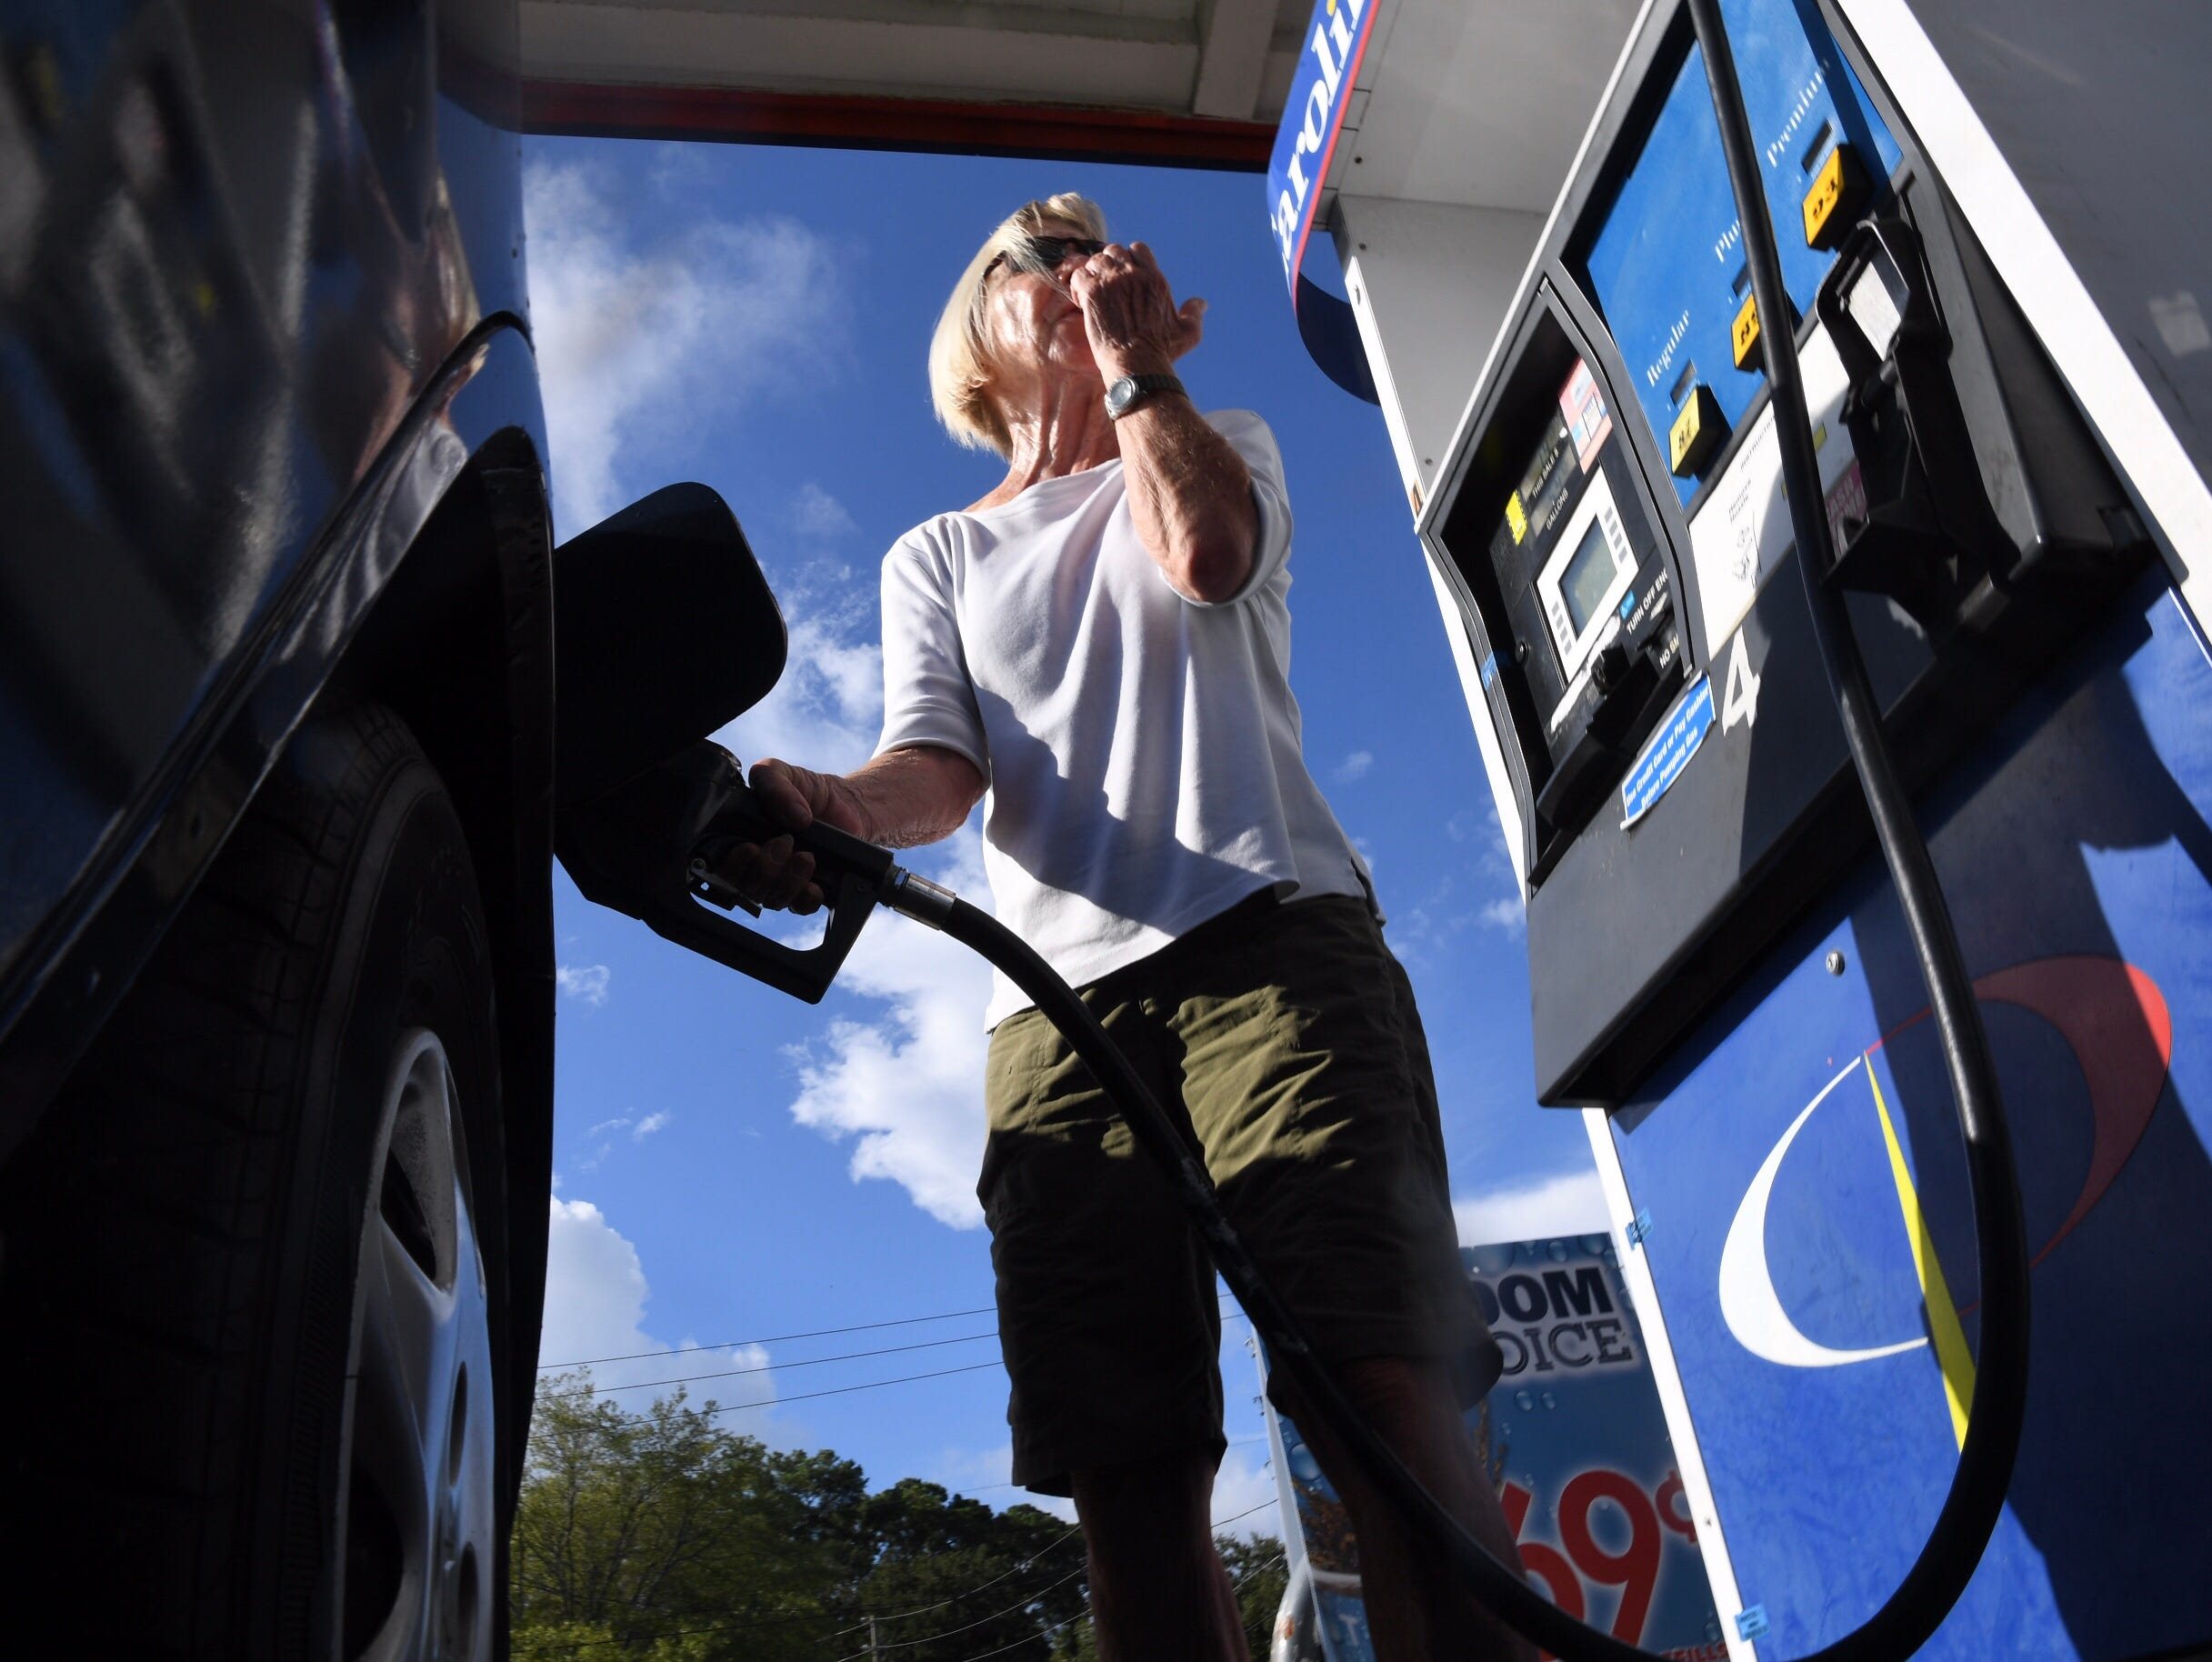 Margie Garrabrand of Wilmington, N.C.,  tops off her vehicle's gas tank on Wednesday, Sept. 12, 2018, in preparation for Hurricane Florence's landfall. She planned to stay put.